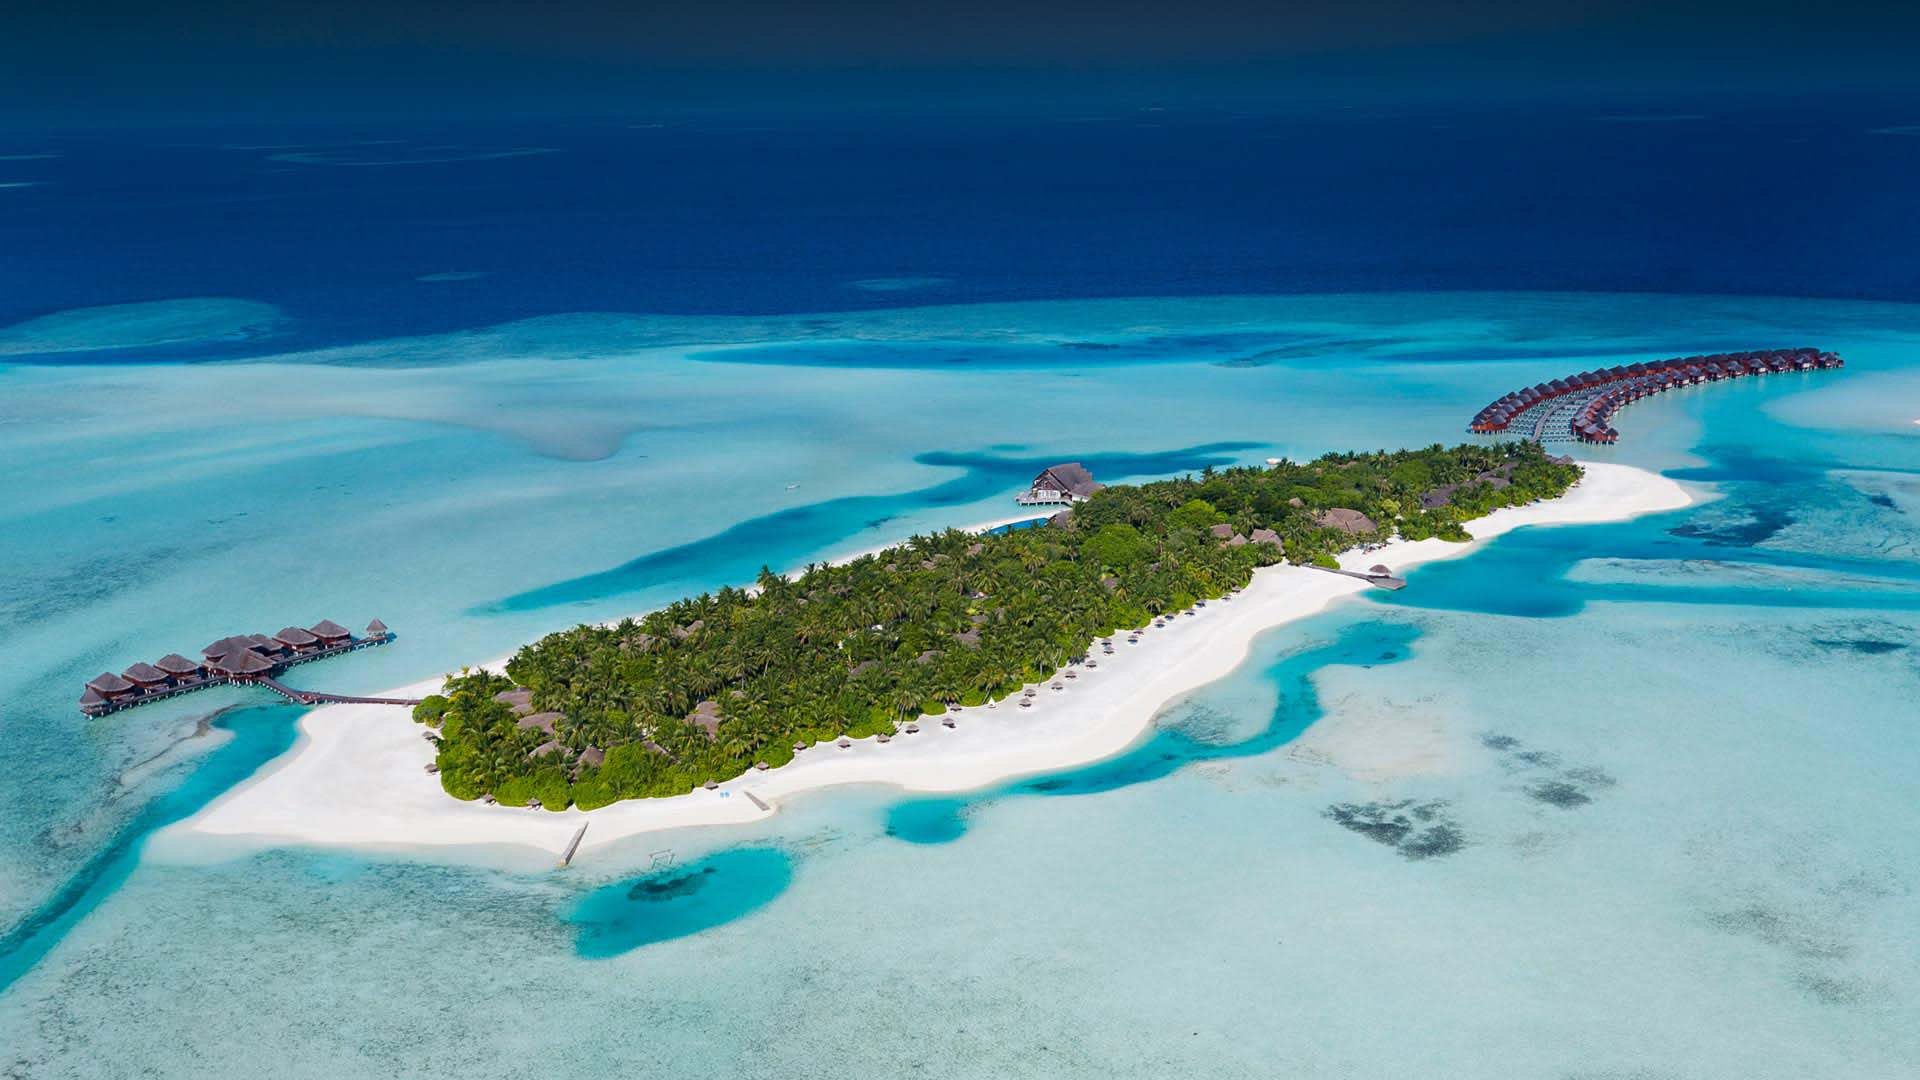 https://assets.anantara.com/image/upload/q_auto/media/minor/anantara/images/anantara-dhigu-maldives-resort/the-resort/anantara_dhigu_island_aerial_header_1920x1080.jpg